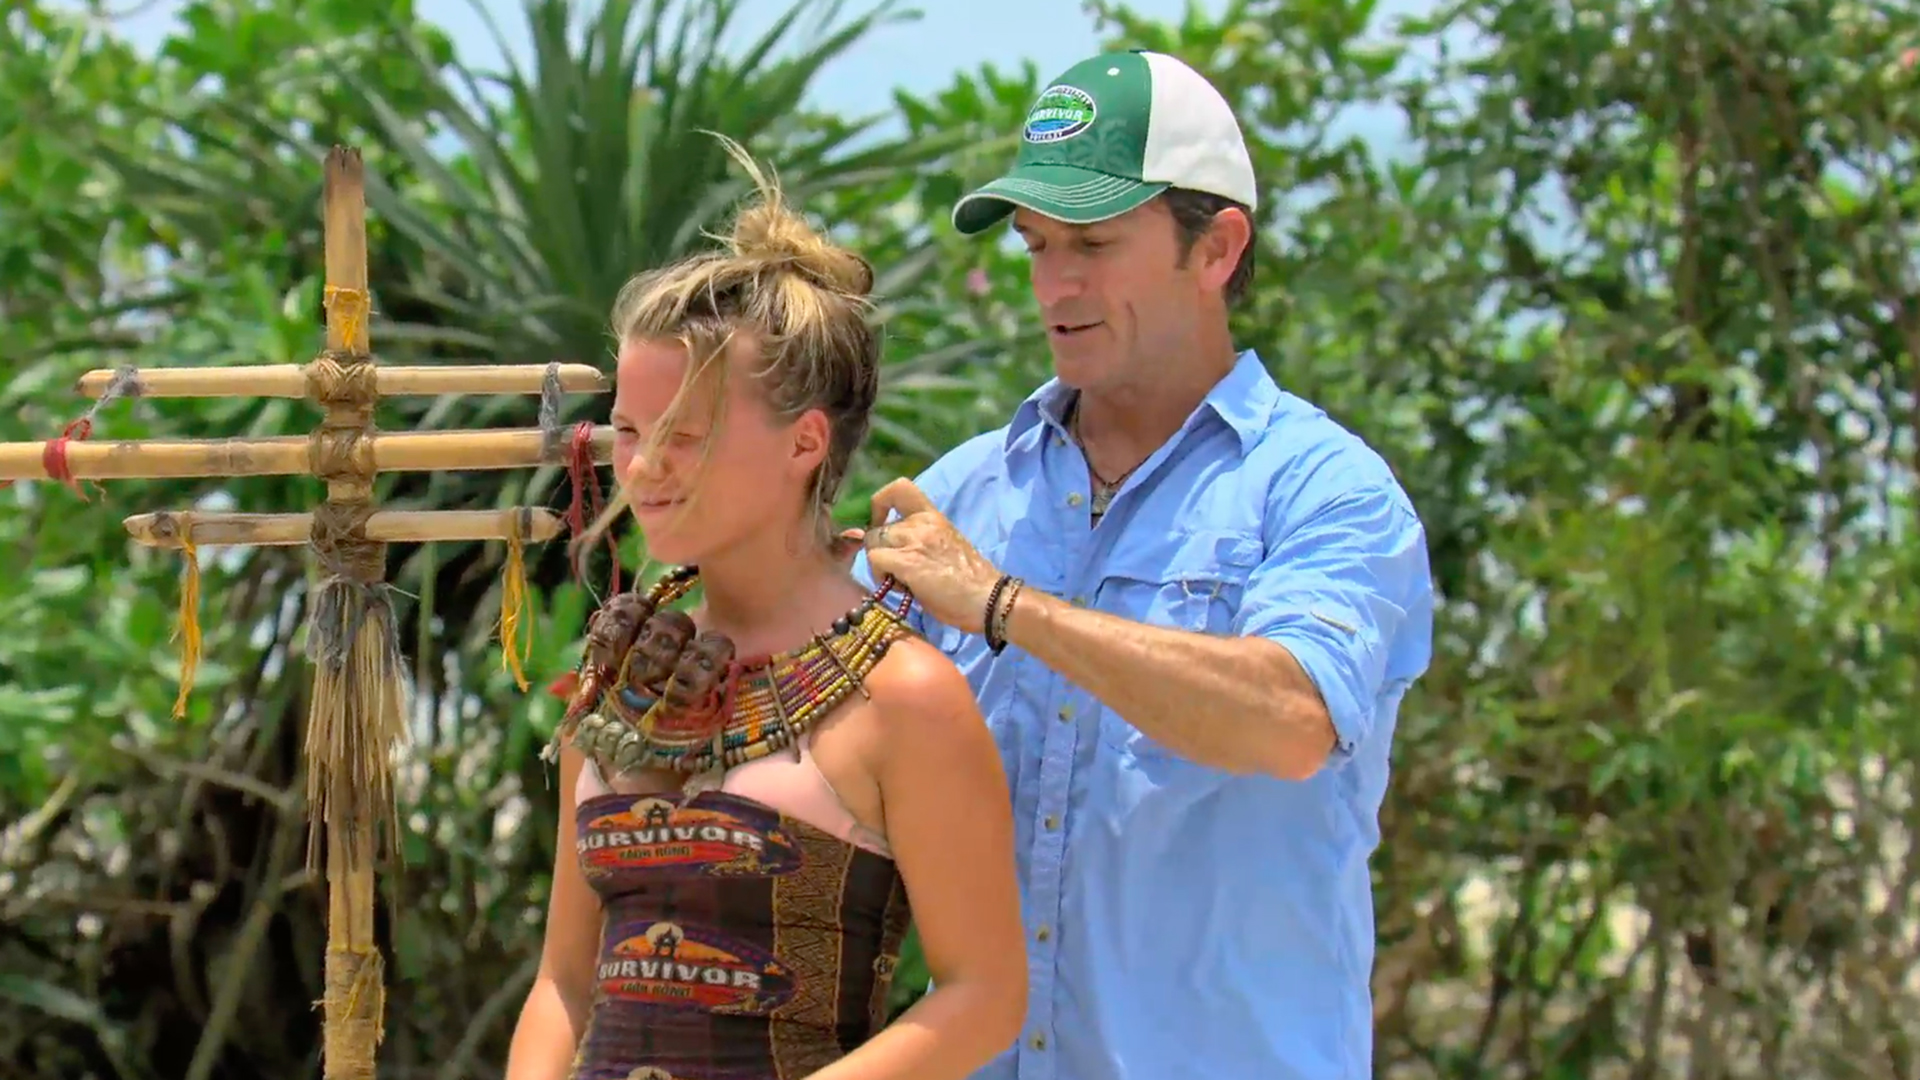 5. Slow and steady wins the race during the Individual Immunity Challenge.